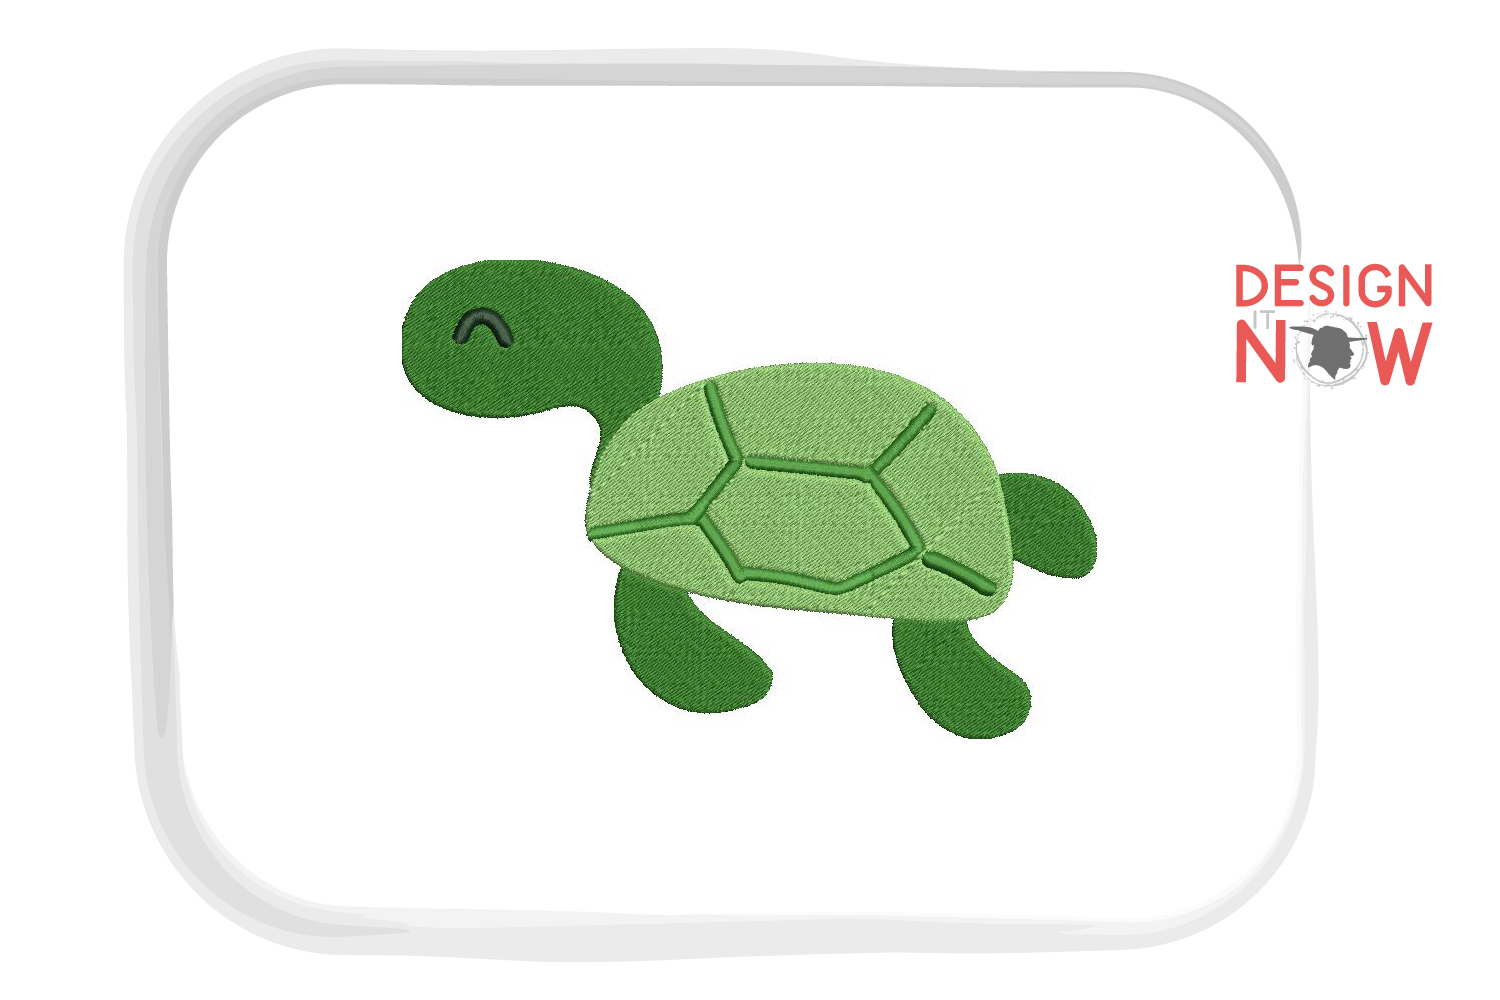 Turtle Embroidery Design, Turtle Embroidery Pattern, Sea example image 5